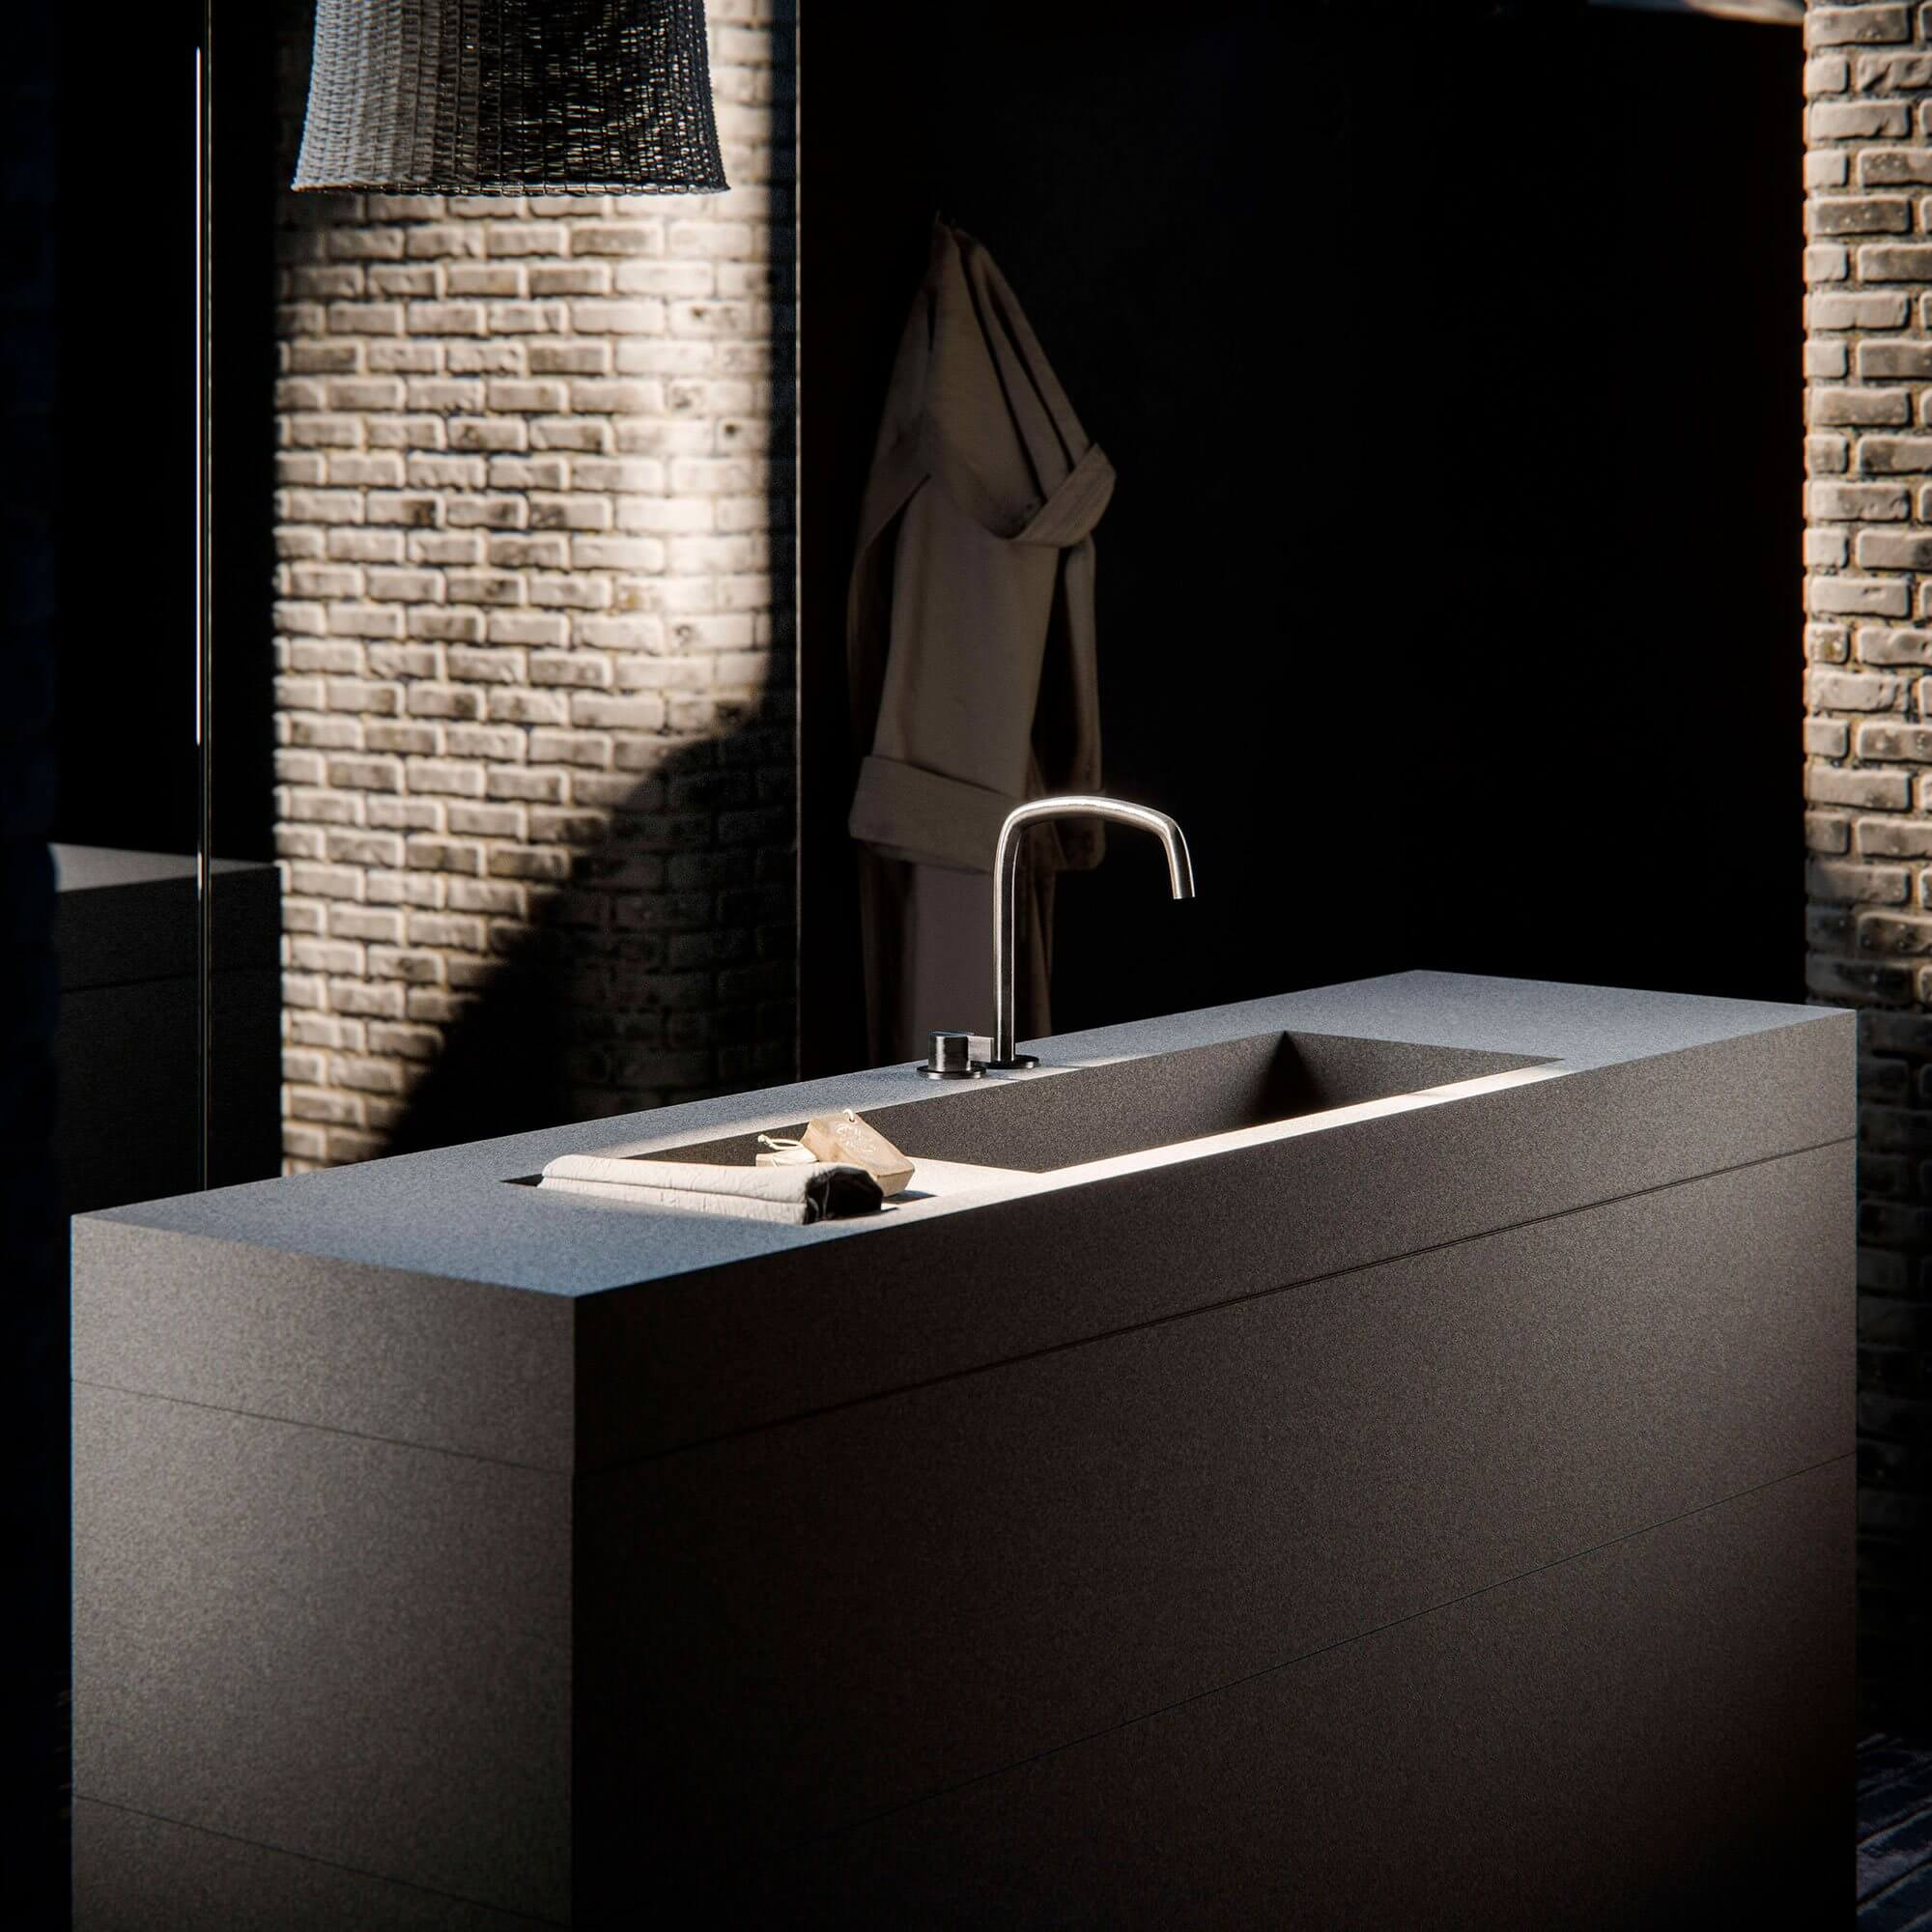 Modern Bathroom Design ByCOCOON Bycocoon 2018 08 21T13:55:22+00:00